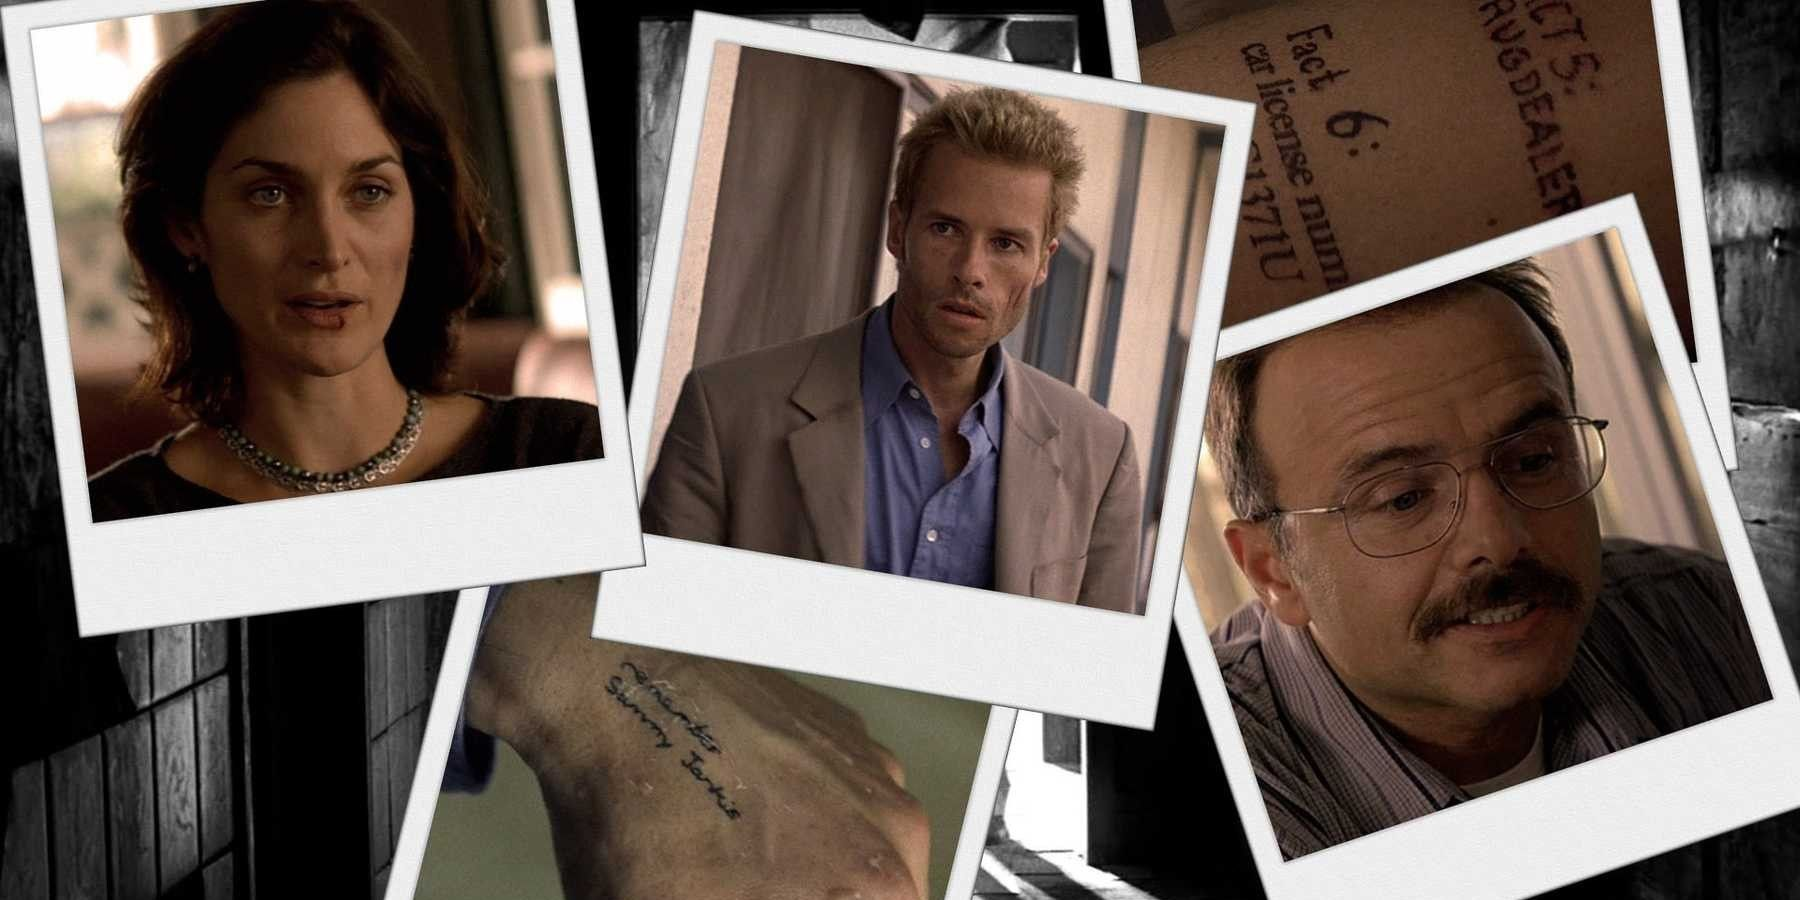 Remembering Memento, the Film That Put Christopher Nolan on the Map